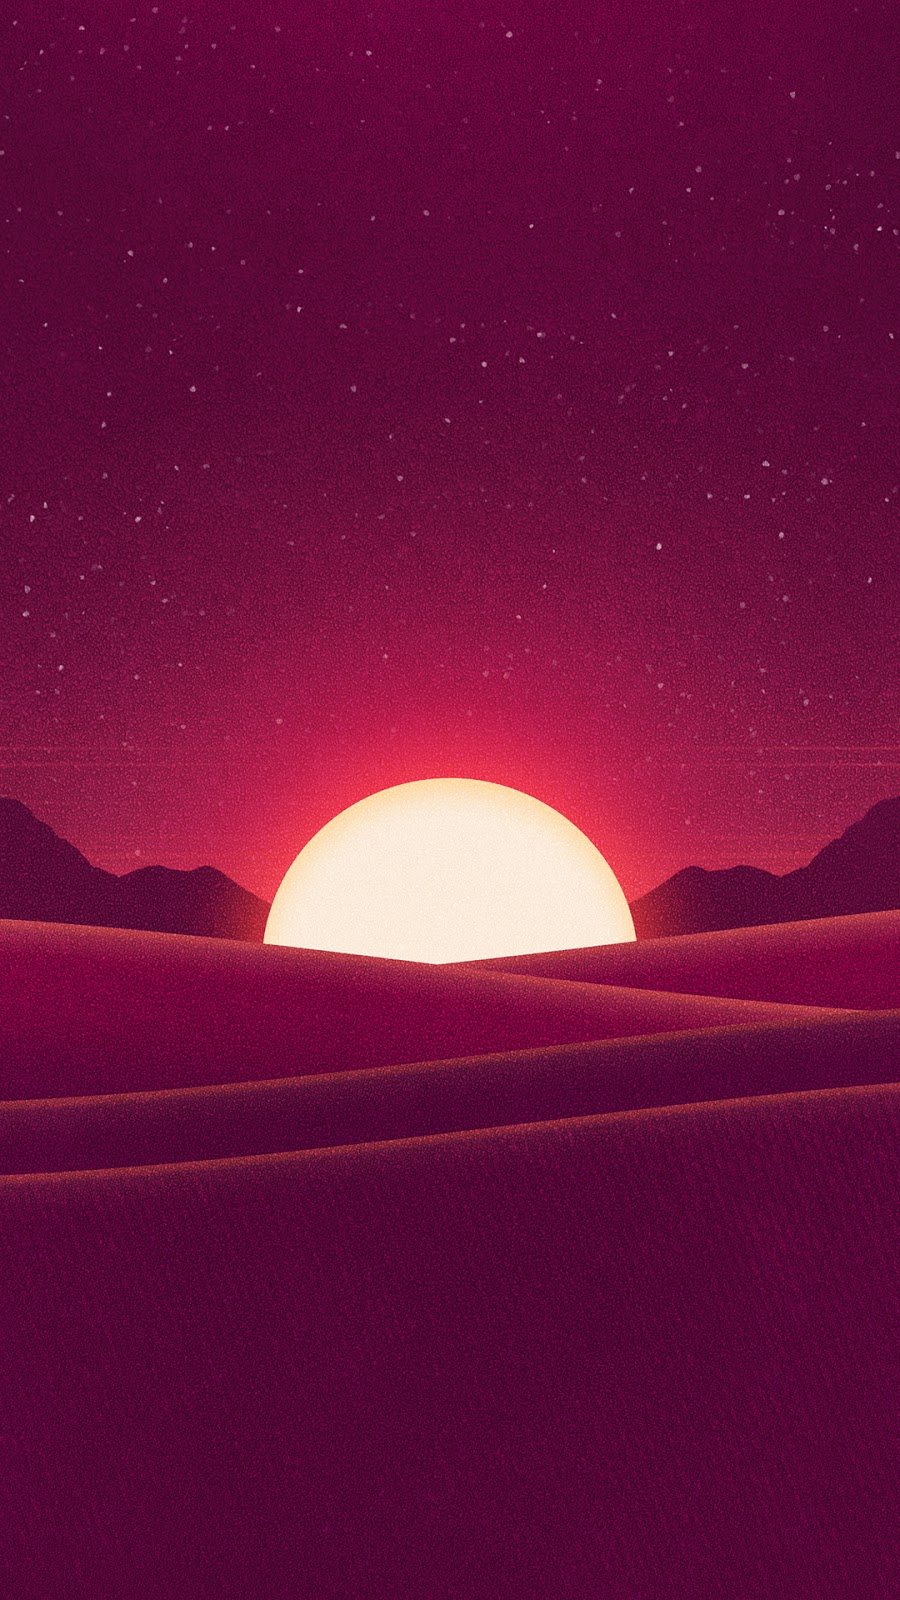 Sunset minimal wallpaper